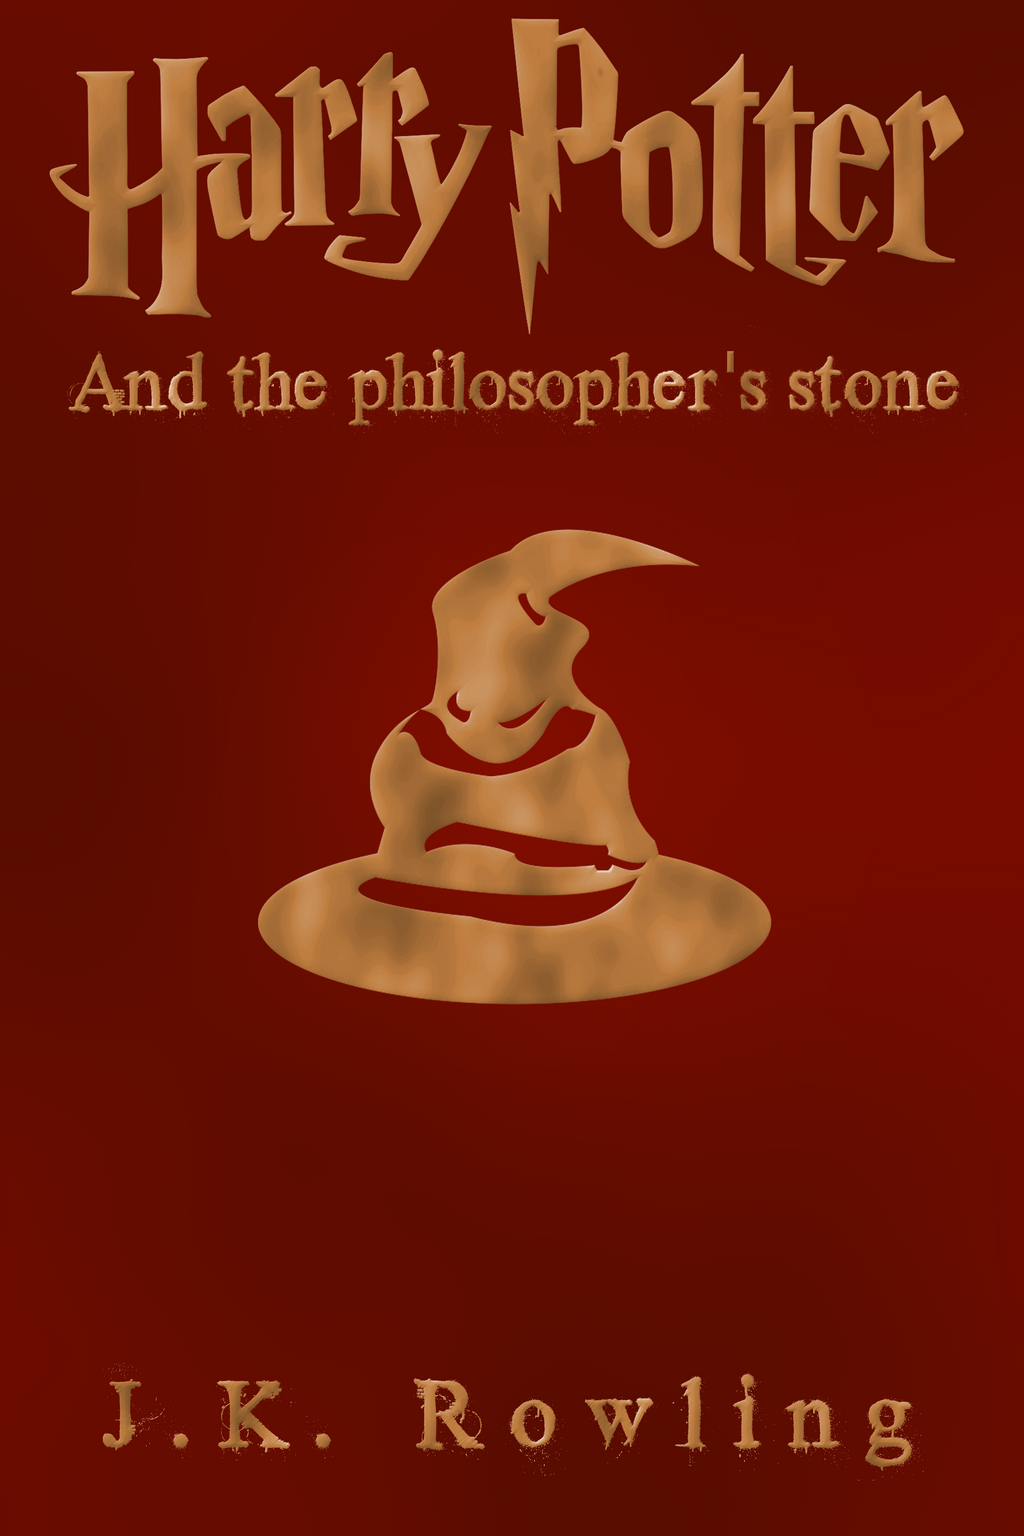 Harry Potter Book Cover Images : Cover for harry potter and the philosopher s stone by